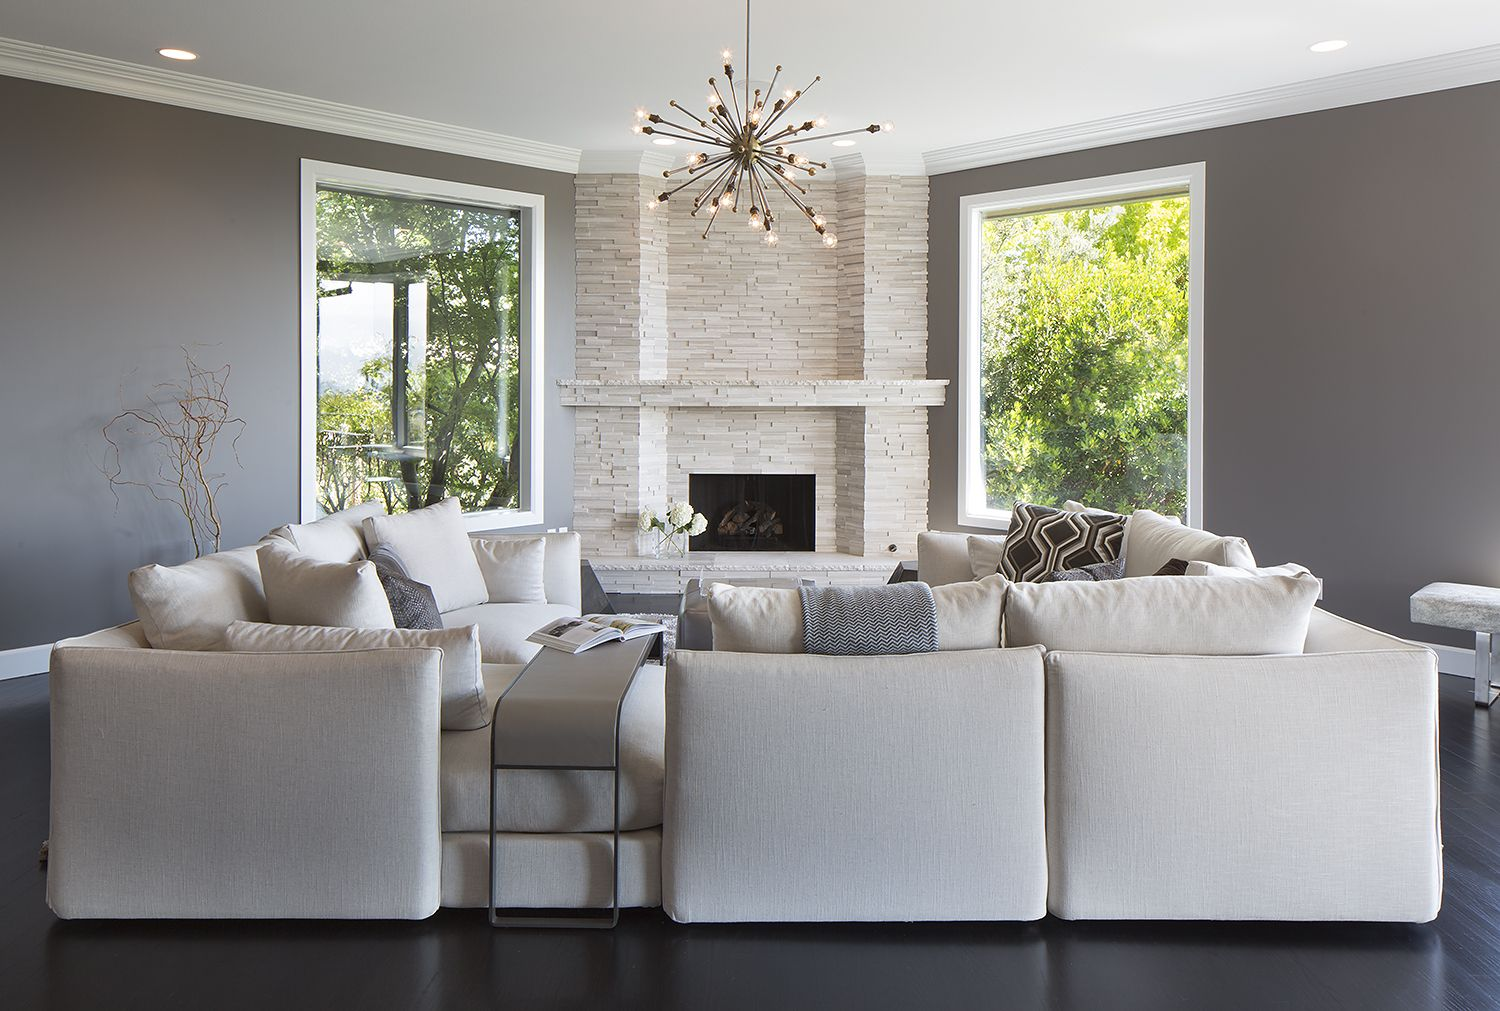 sectional sofas & 40 Sectional Sofas For Every Style Of Living Room Decor - Living ...